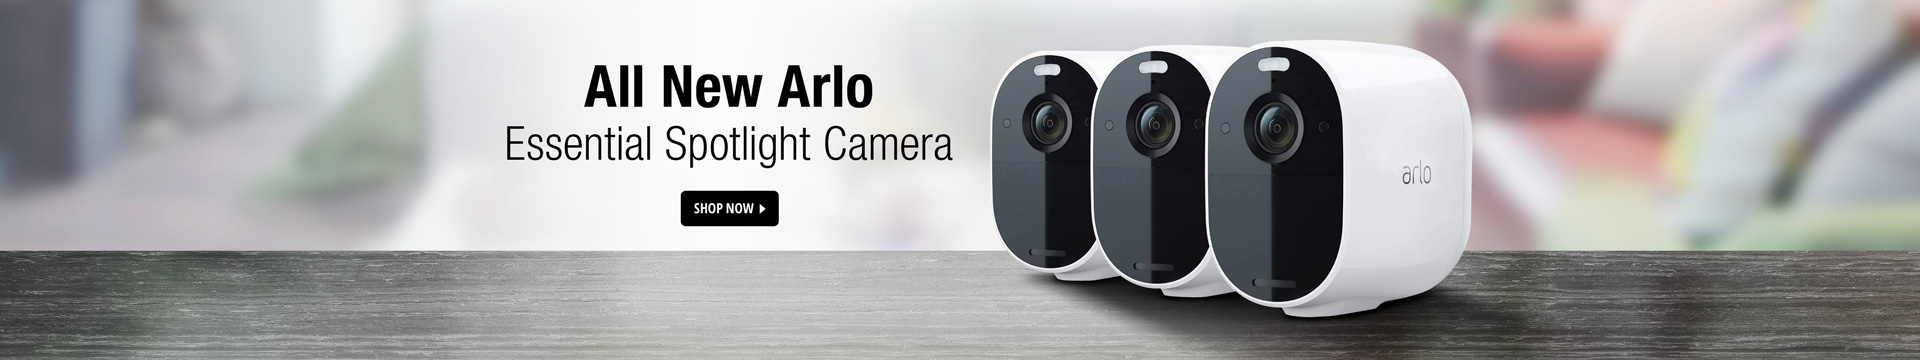 All New Arlo